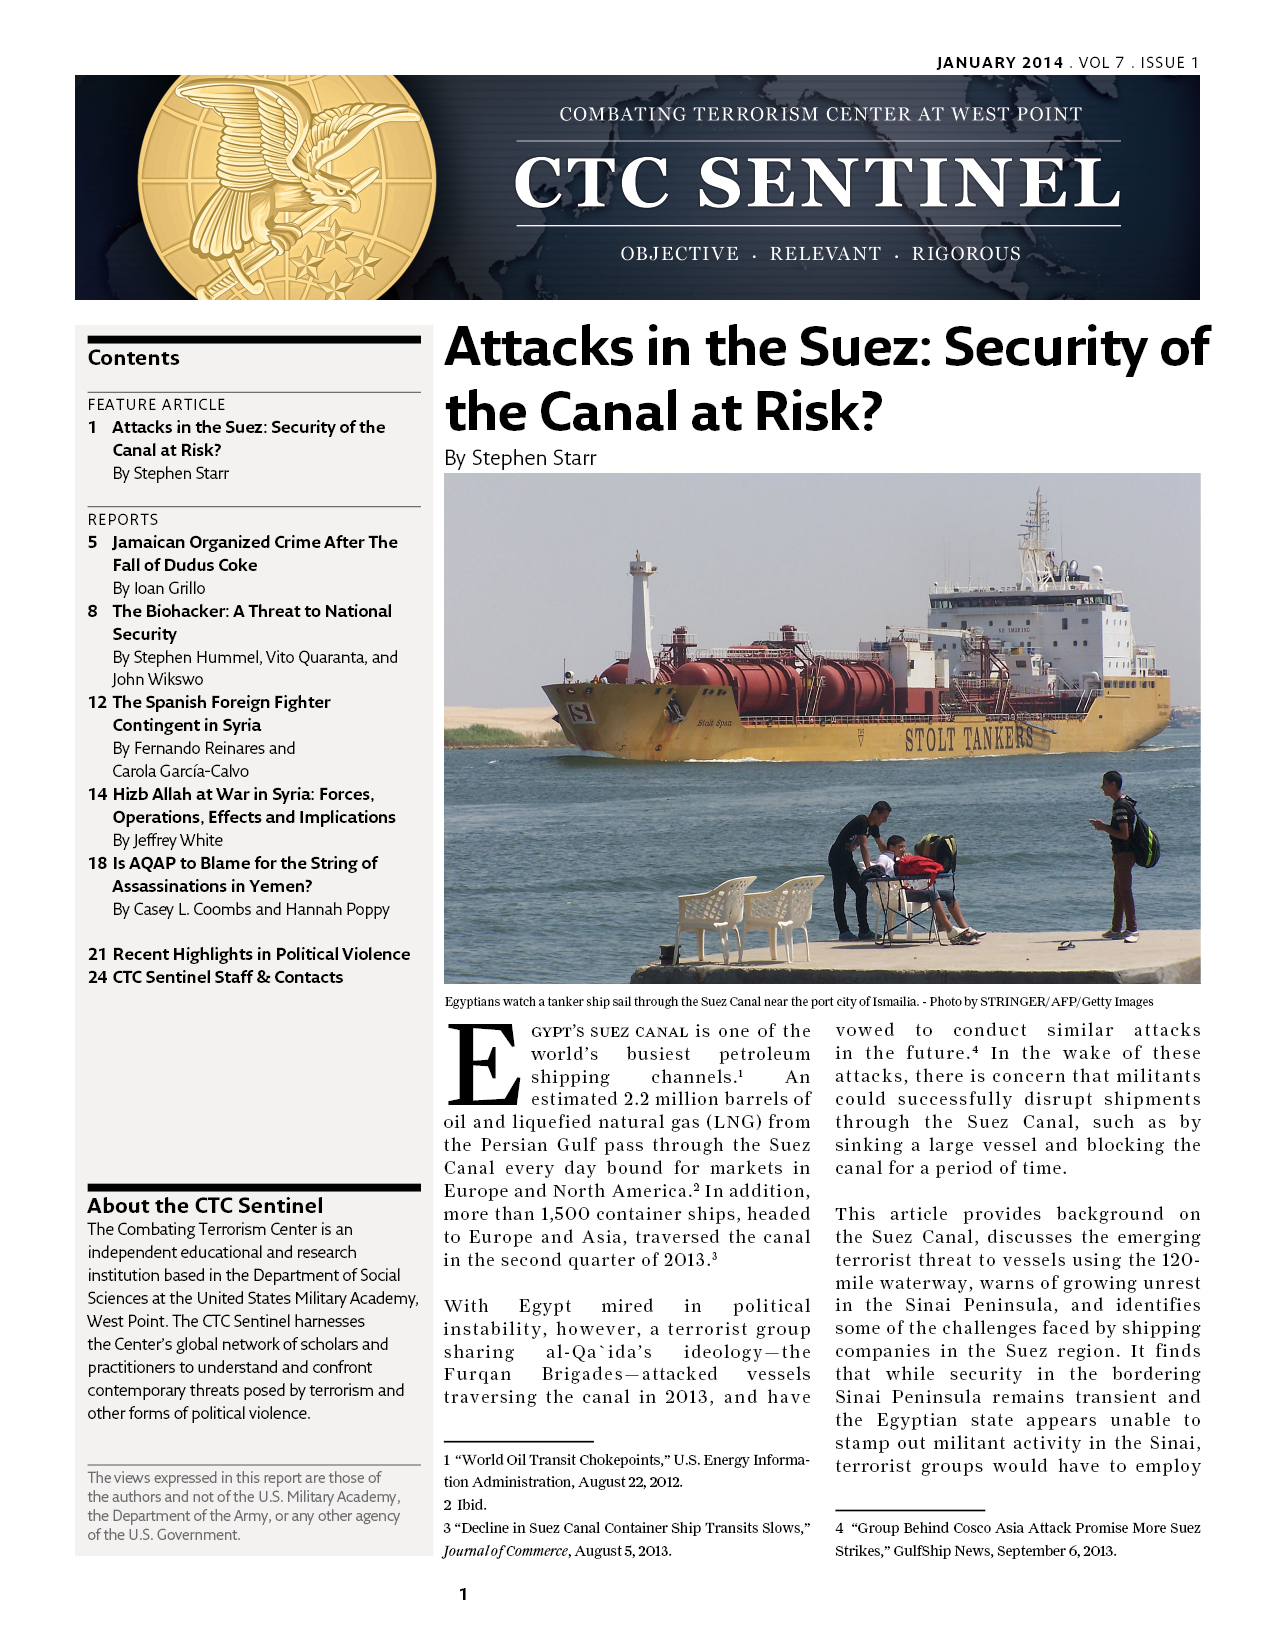 attacks in the suez security of the canal at risk combating terrorism center at west point